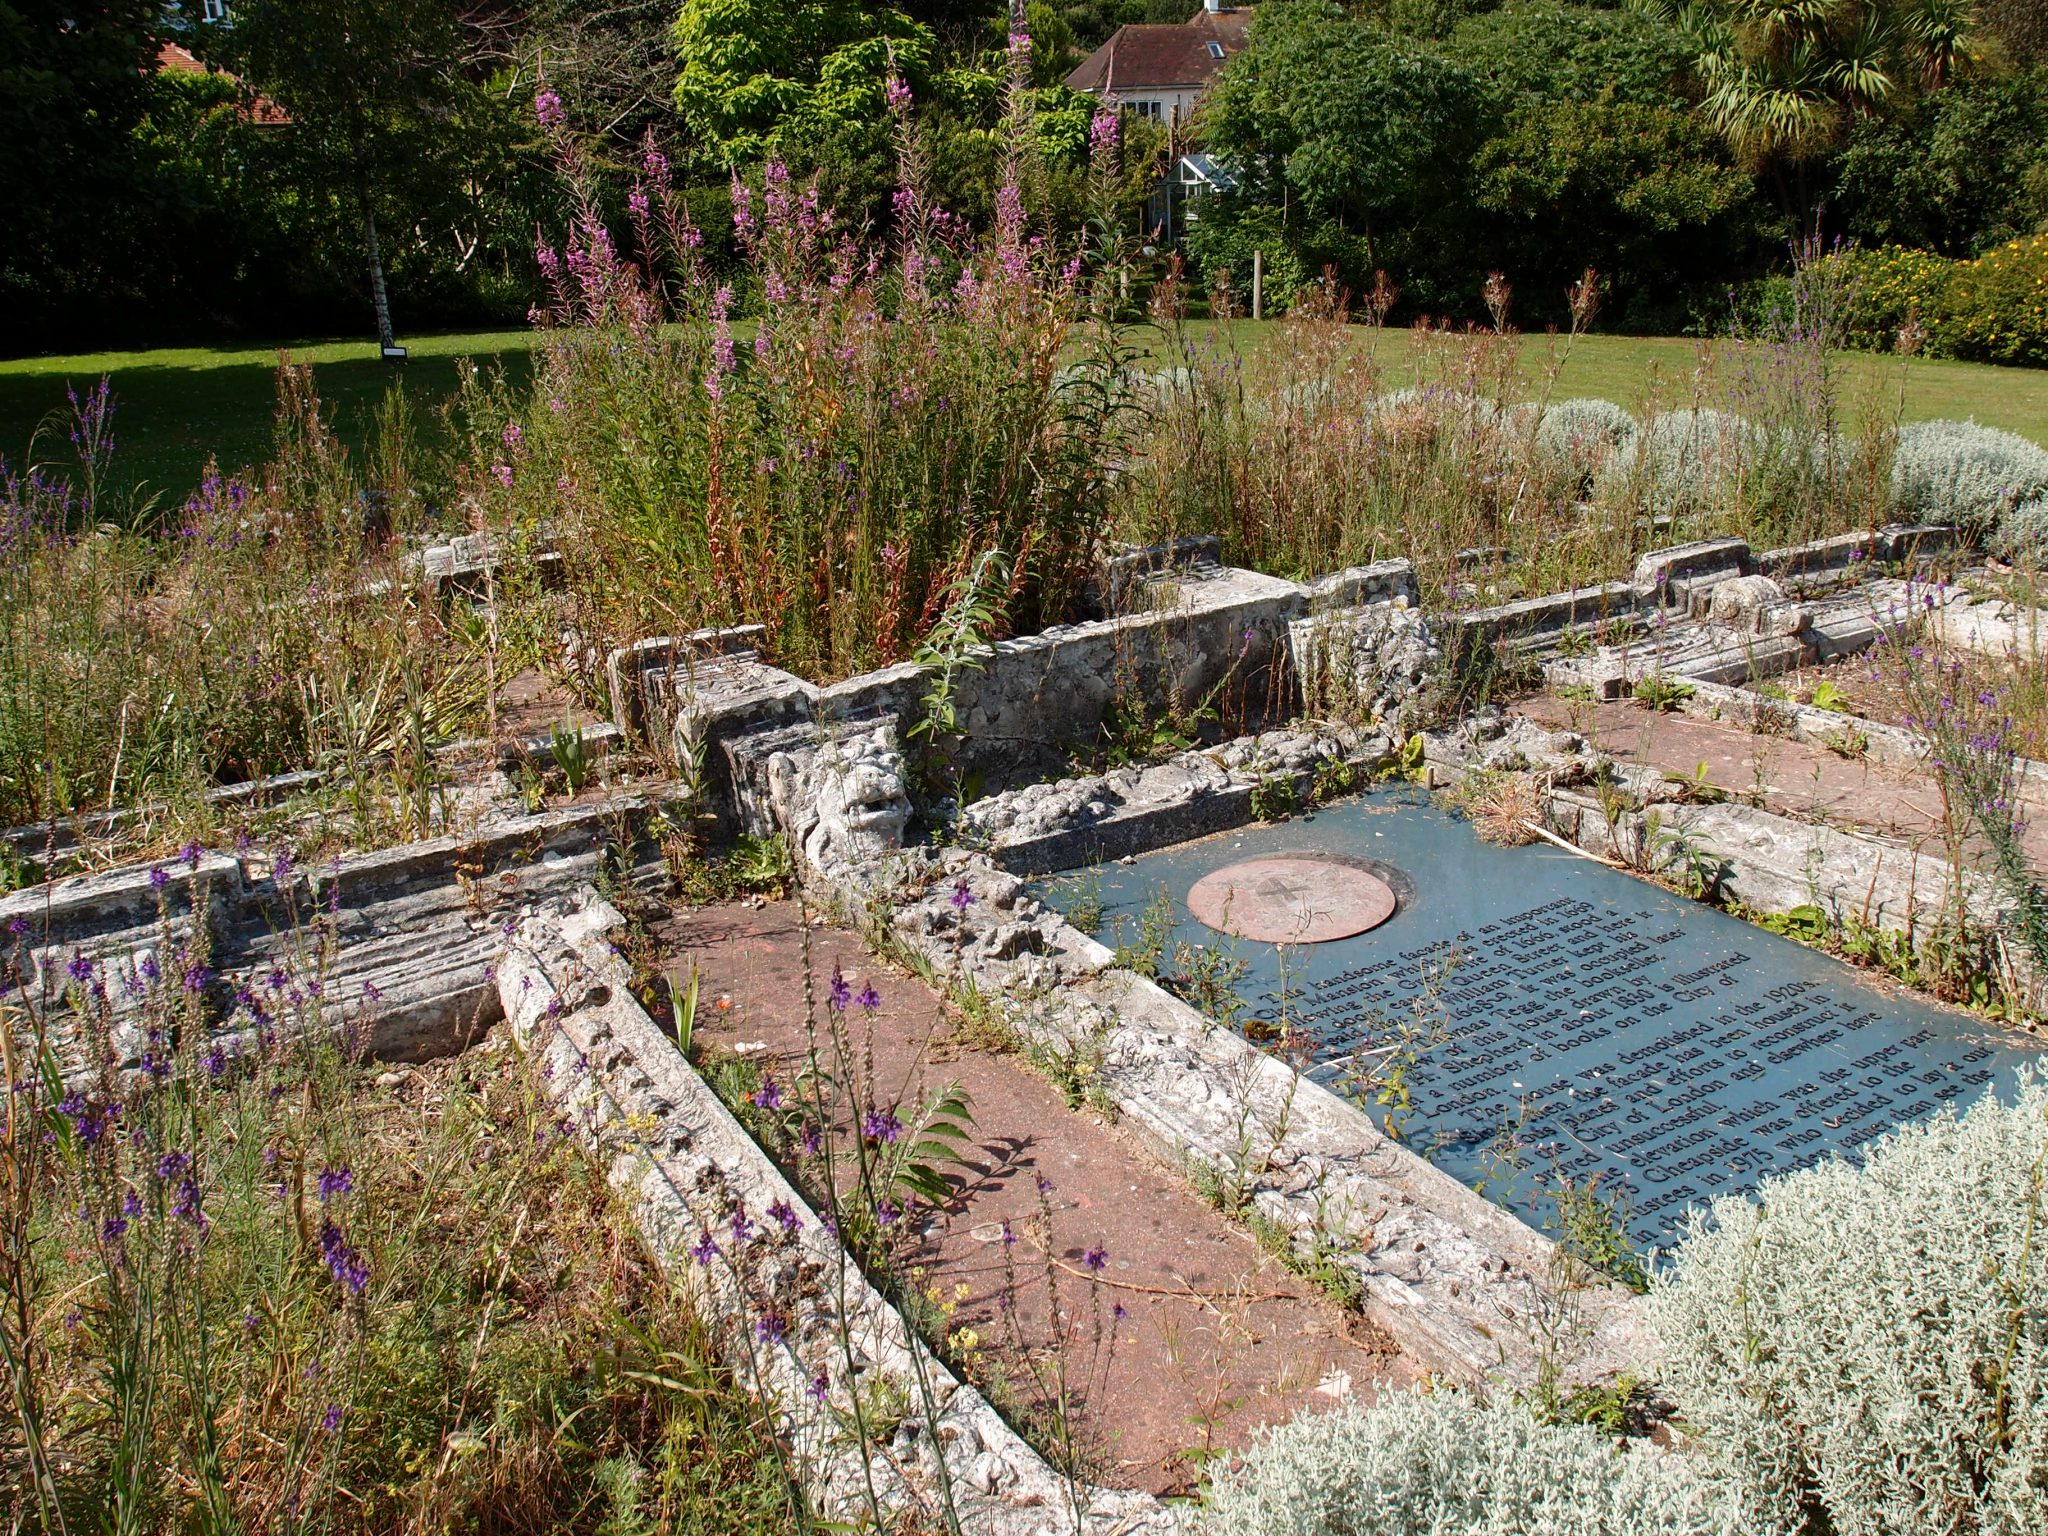 Another view of the architectural remnant garden.